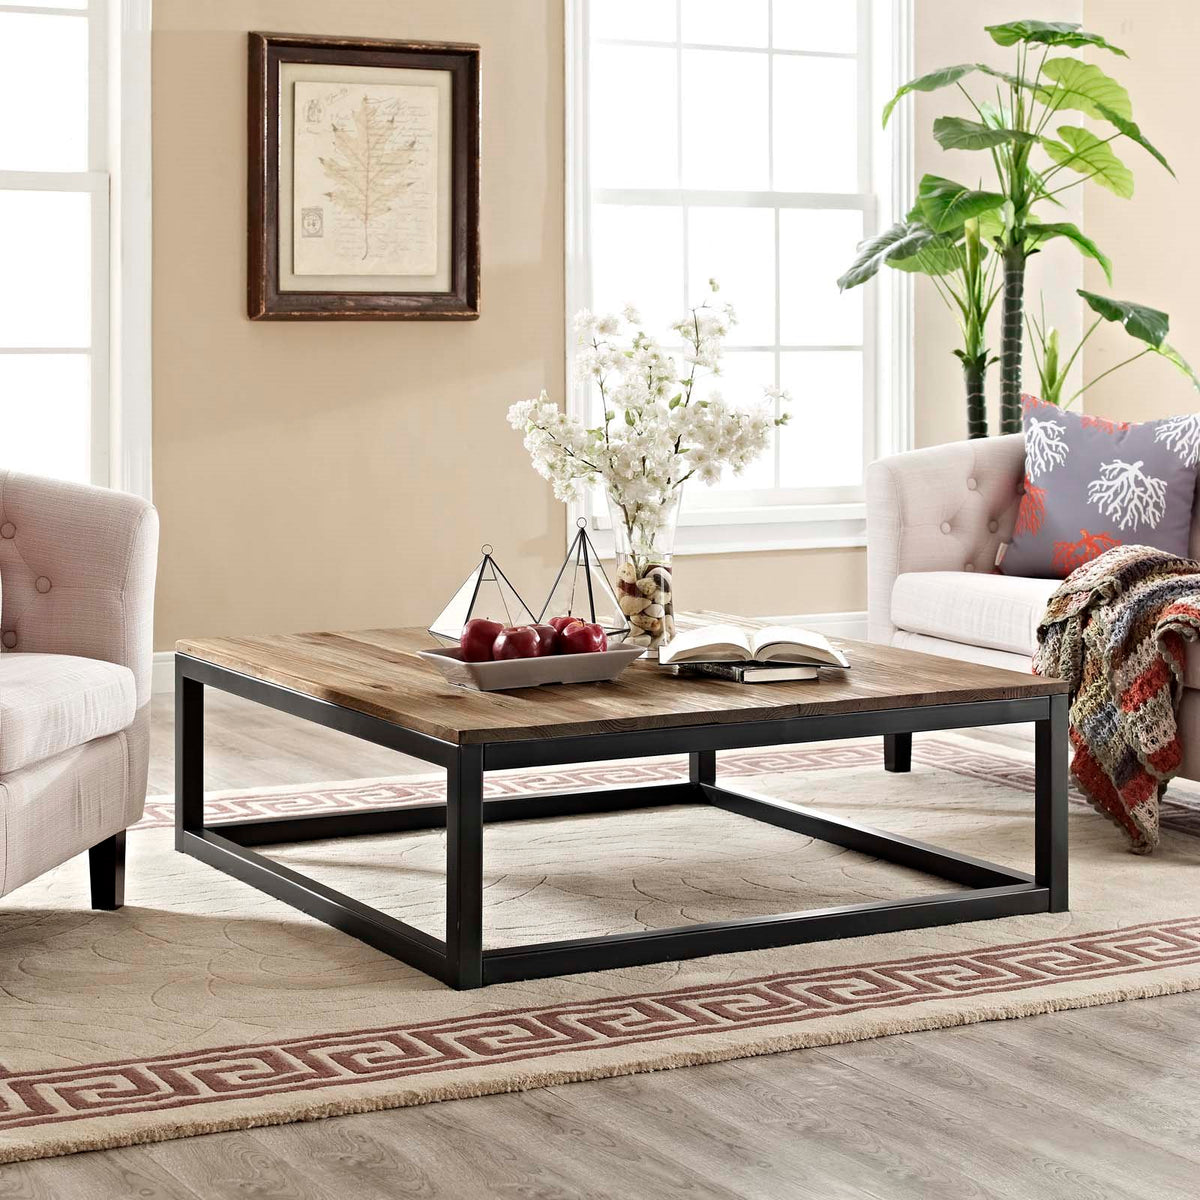 Oliver Large Coffee Table Brown